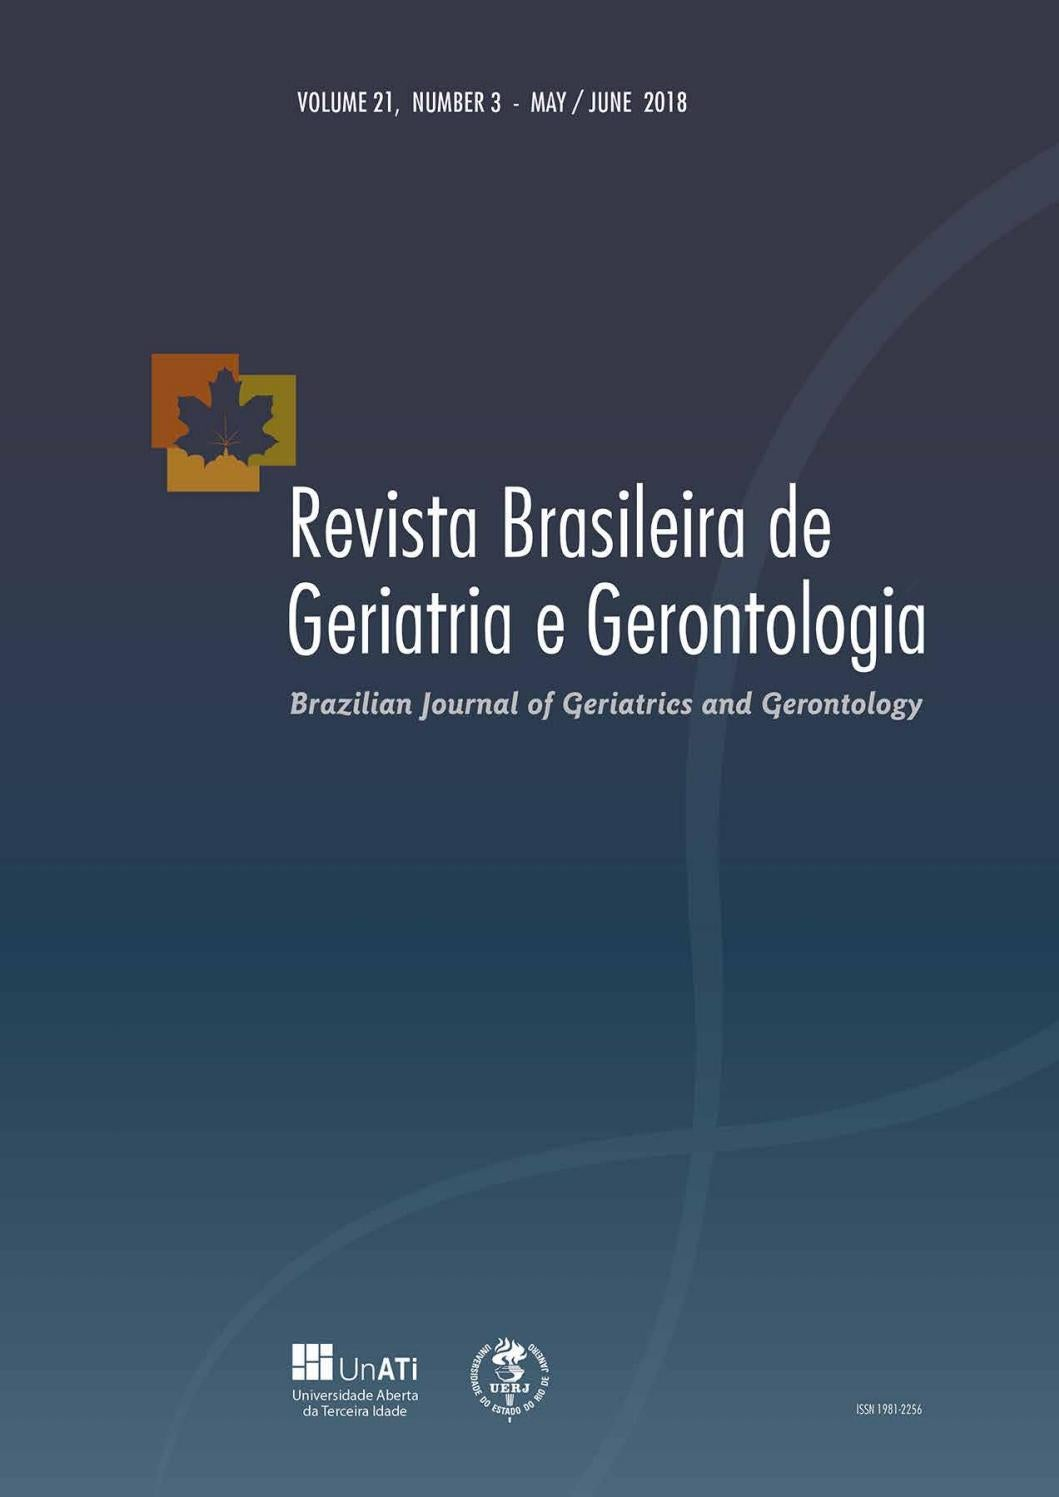 Rbgg Vol 21 Nº3 May June 2018 English By Revista Brasileira De Geriatria E Gerontologia Rbgg Issuu